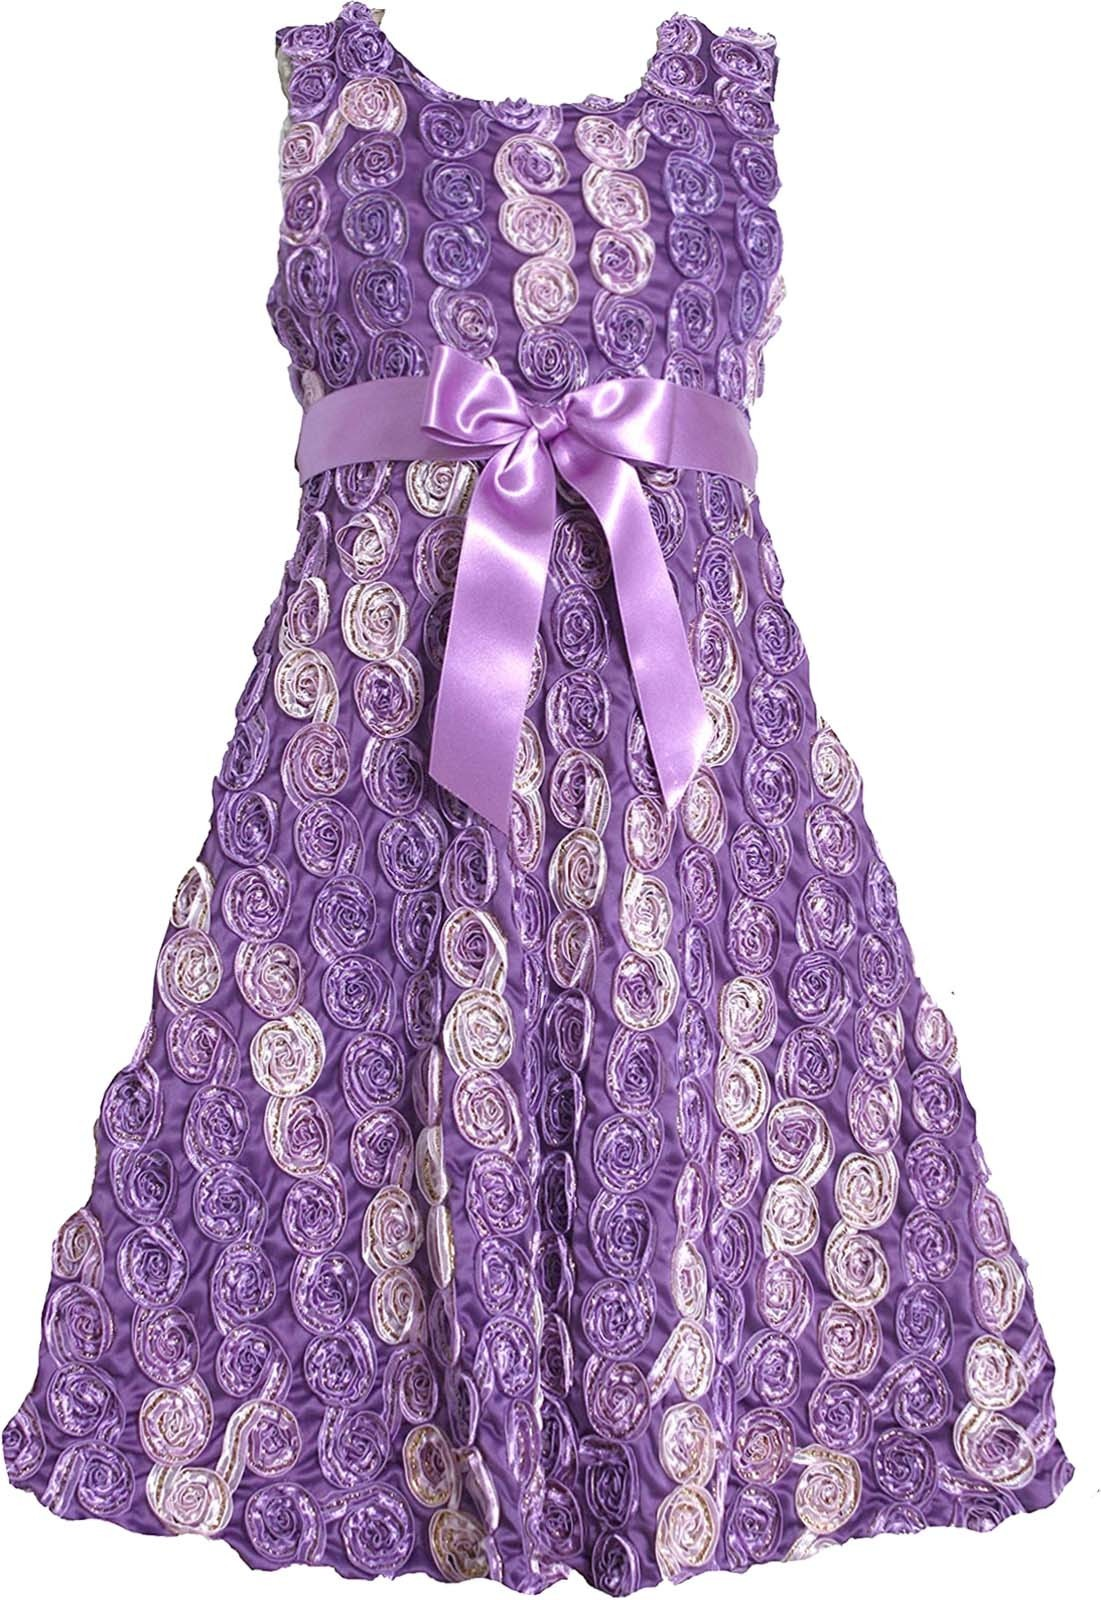 Bonnie Jean Big Girl Tween 7-16 Purple Gold Bonaz Rosette Fit Flare Social Dress